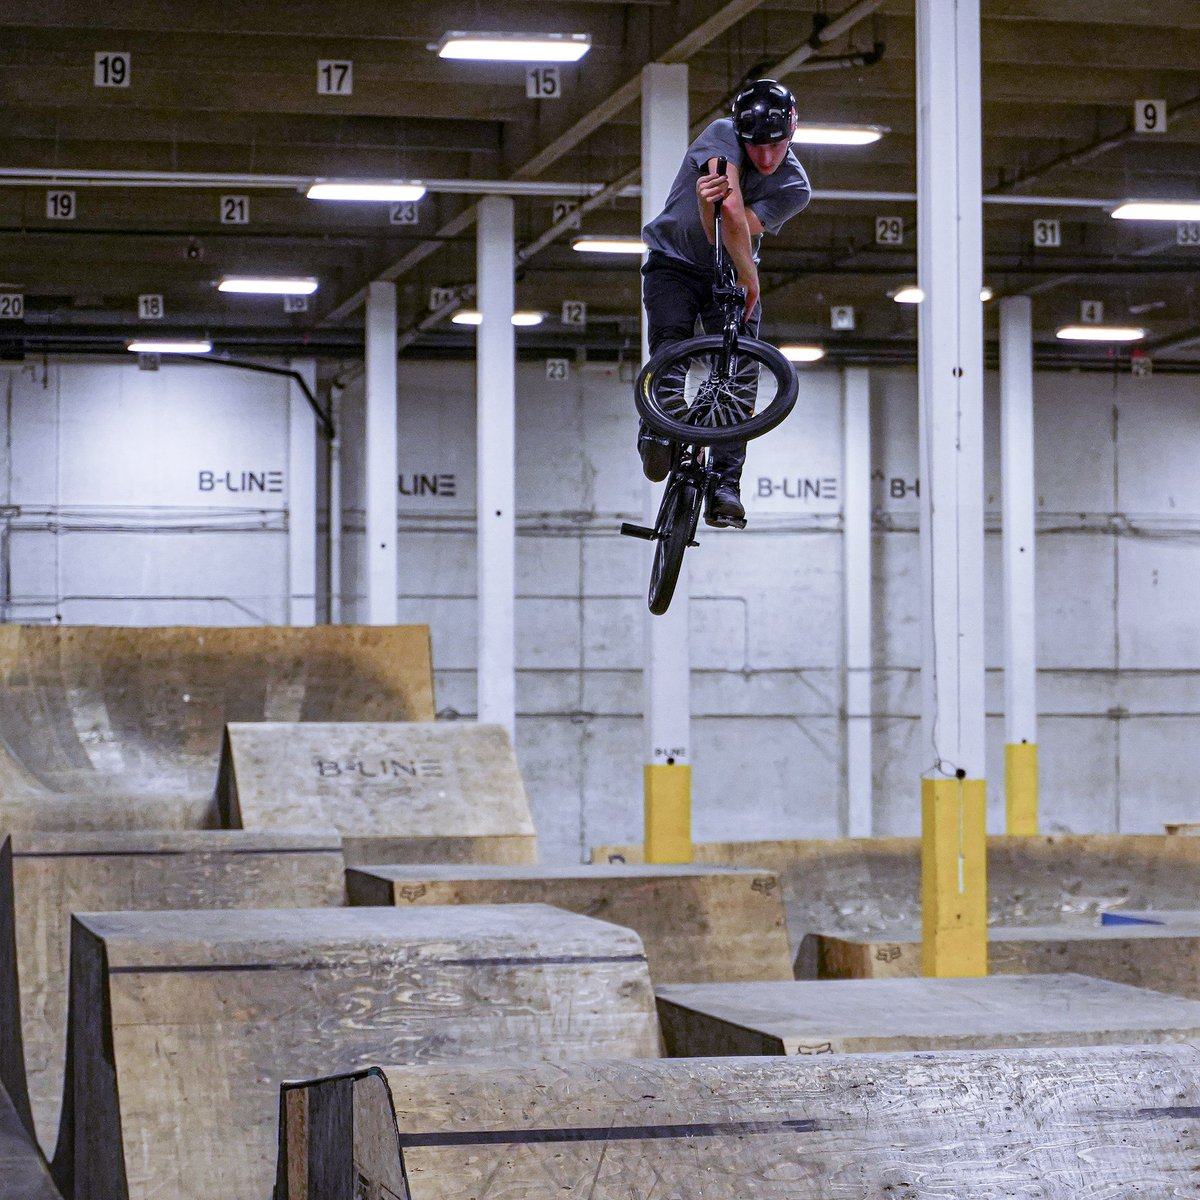 What do you think of this x-up? #bmx #ShutCanadaDown #wontstop pic.twitter.com/ZWeJUX6Ygu